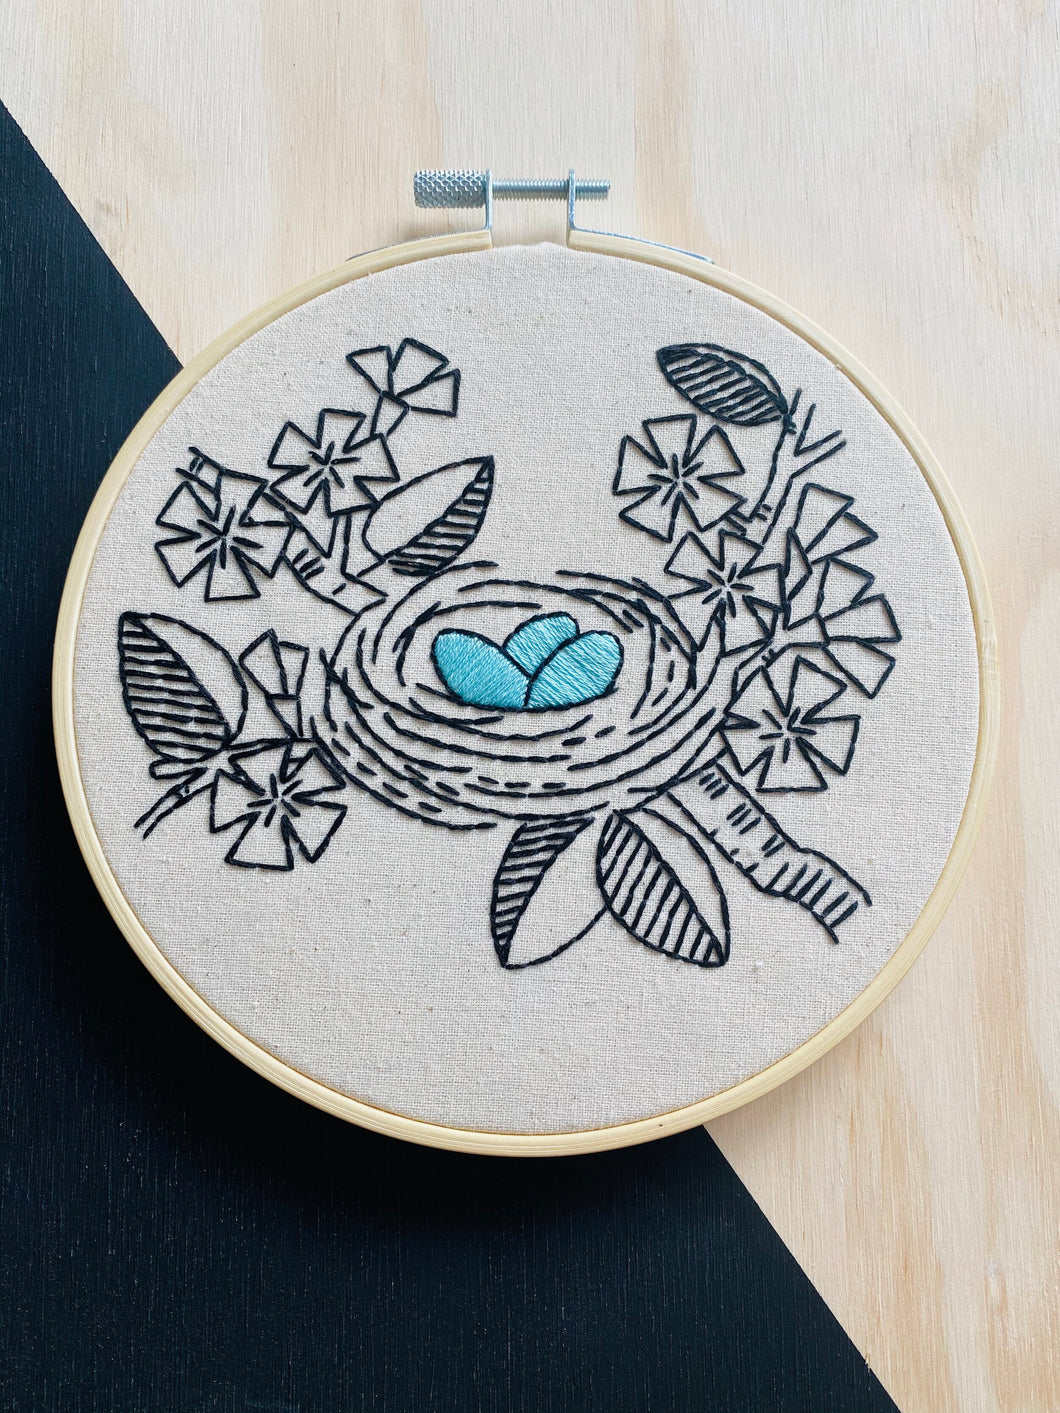 Nest Egg Embroidery Kit